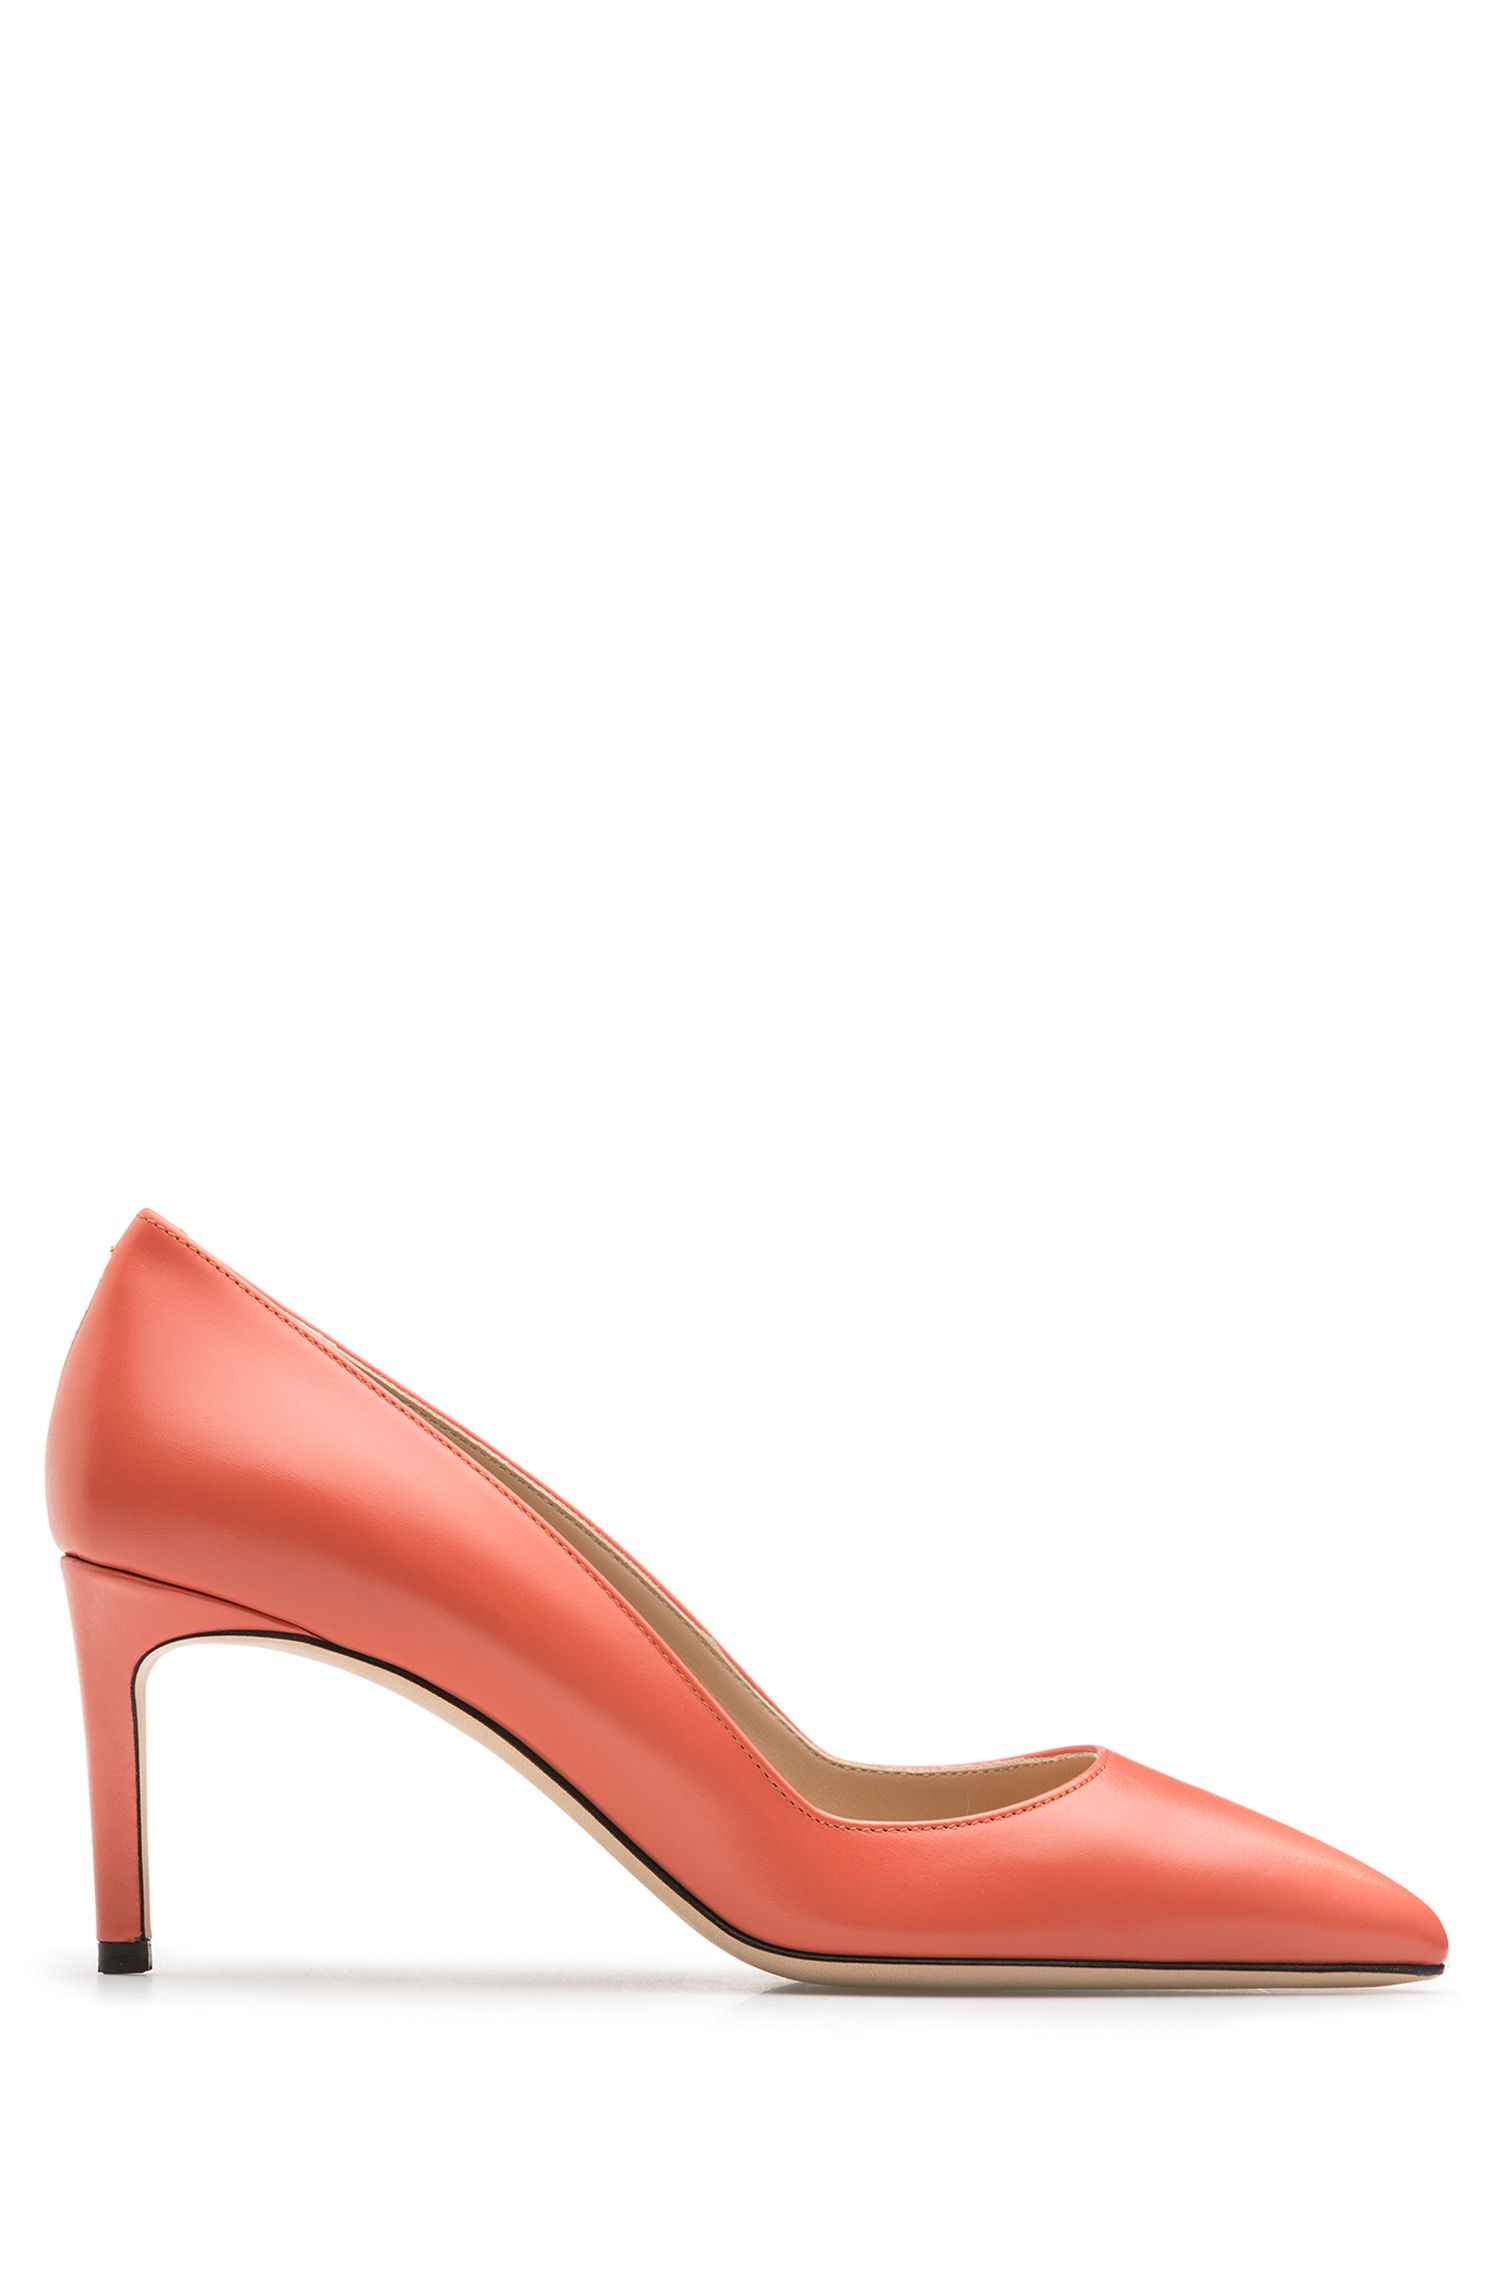 Pointed-toe pumps in smooth Italian leather